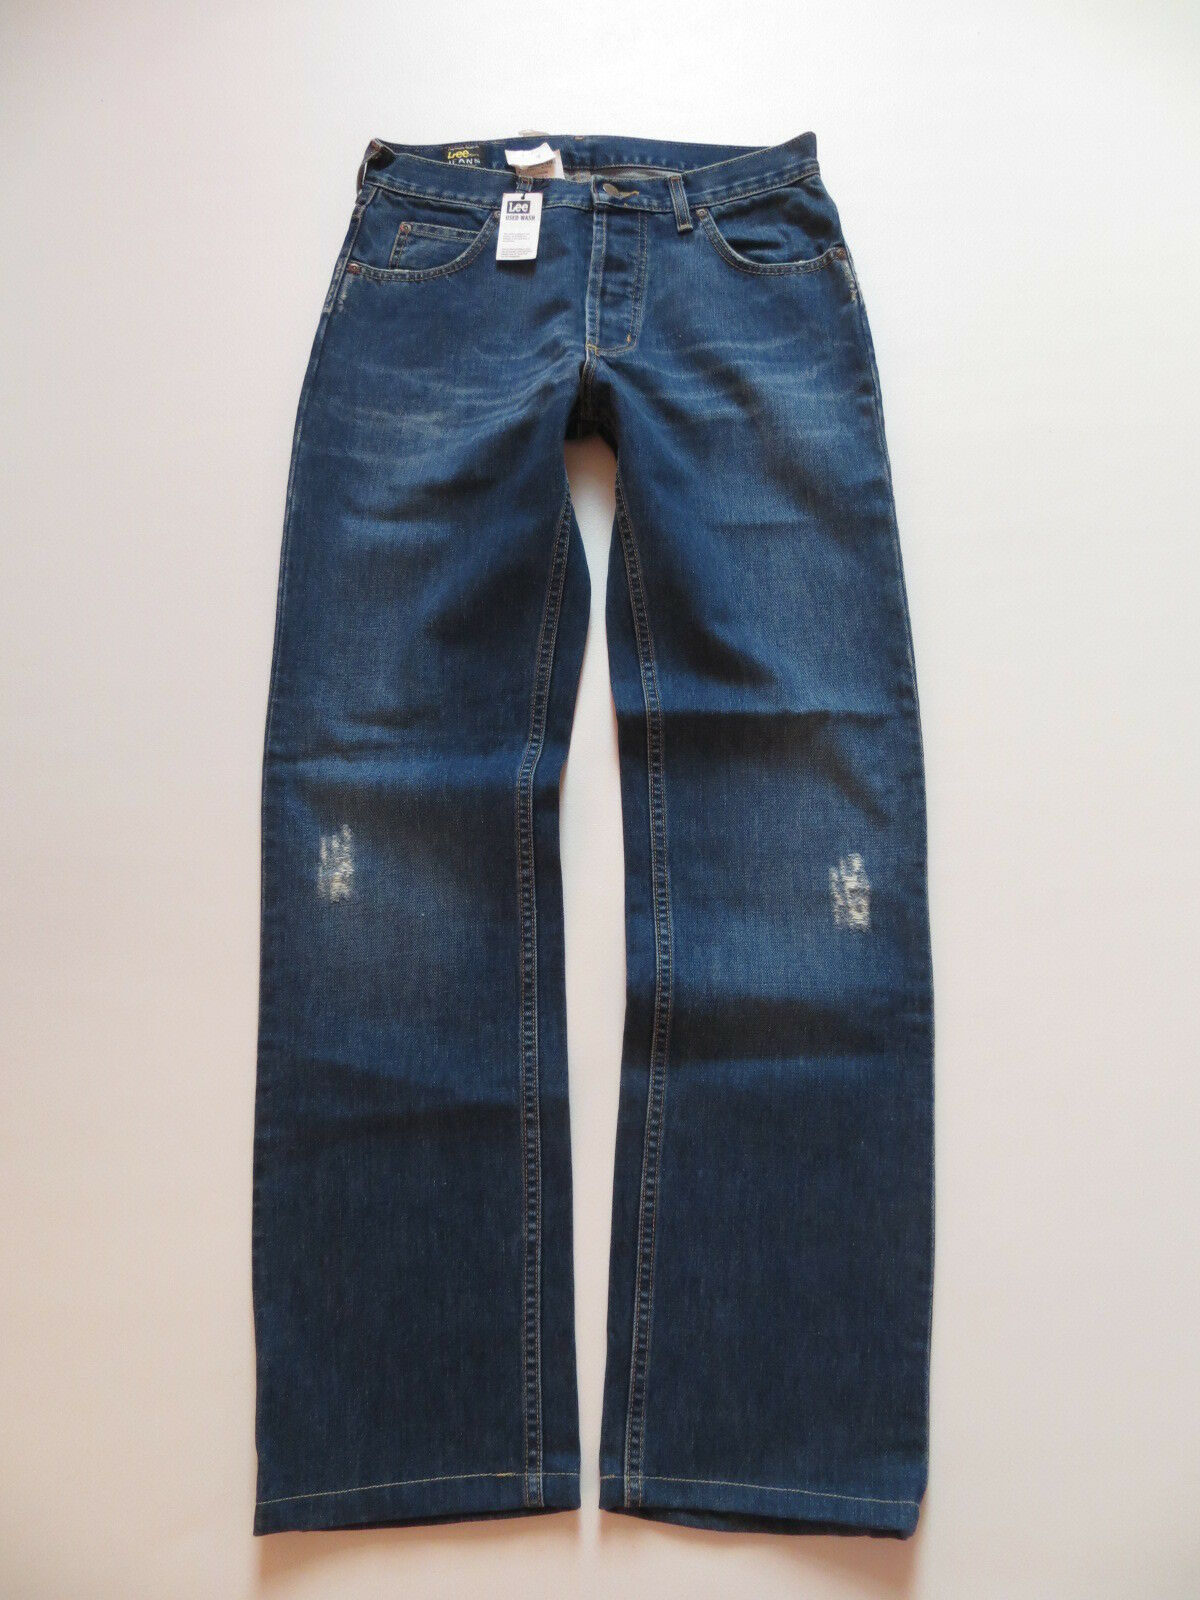 Lee SEATTLE Herren Jeans Hose W 32  L 34 original Vintage Denim Einzigartig